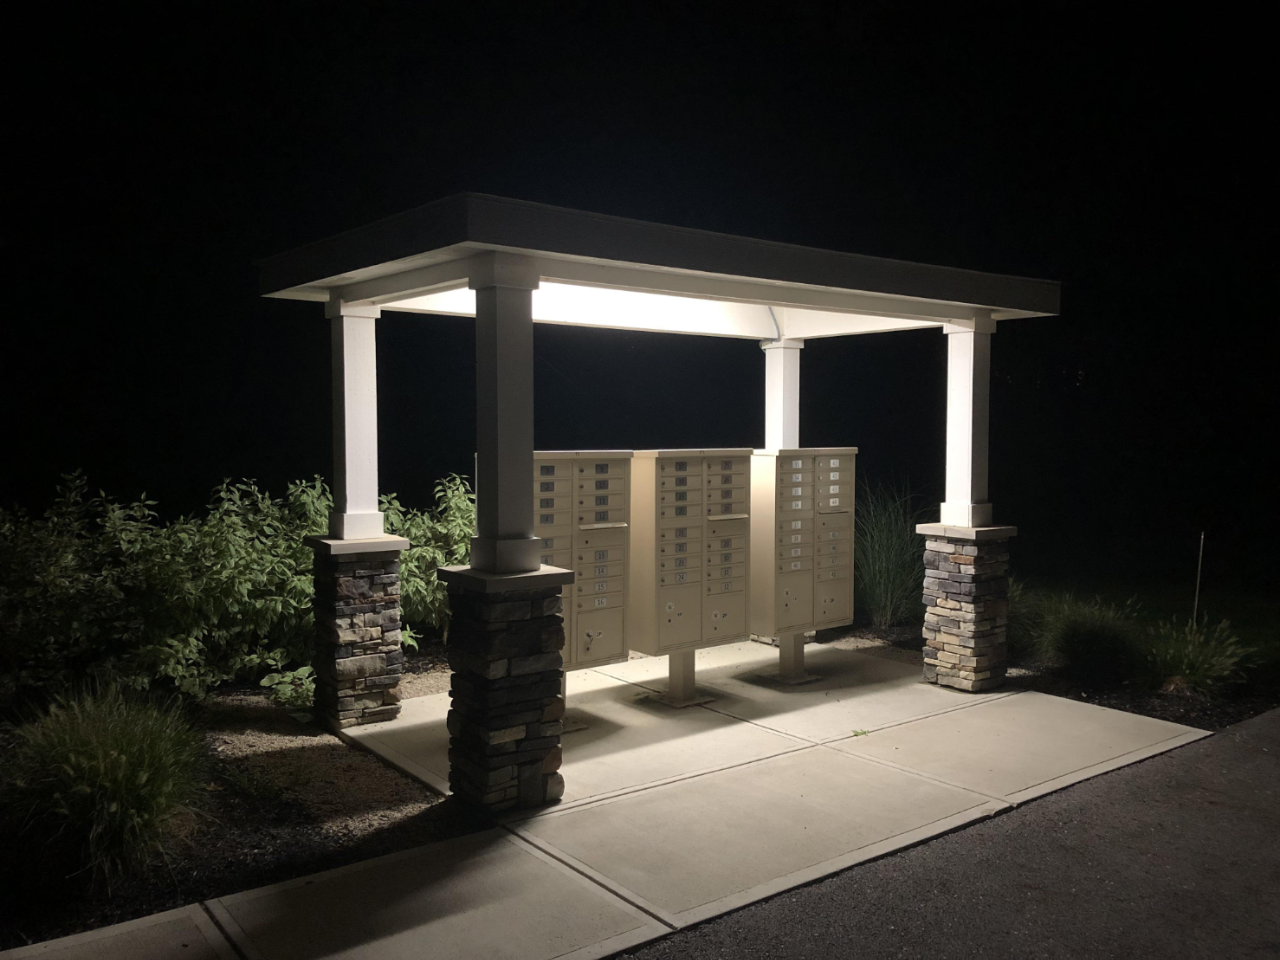 in the dark of the night, a loan set of white postboxes sits underneath a lit up shelter on the path, the back half surrounded by bushes.